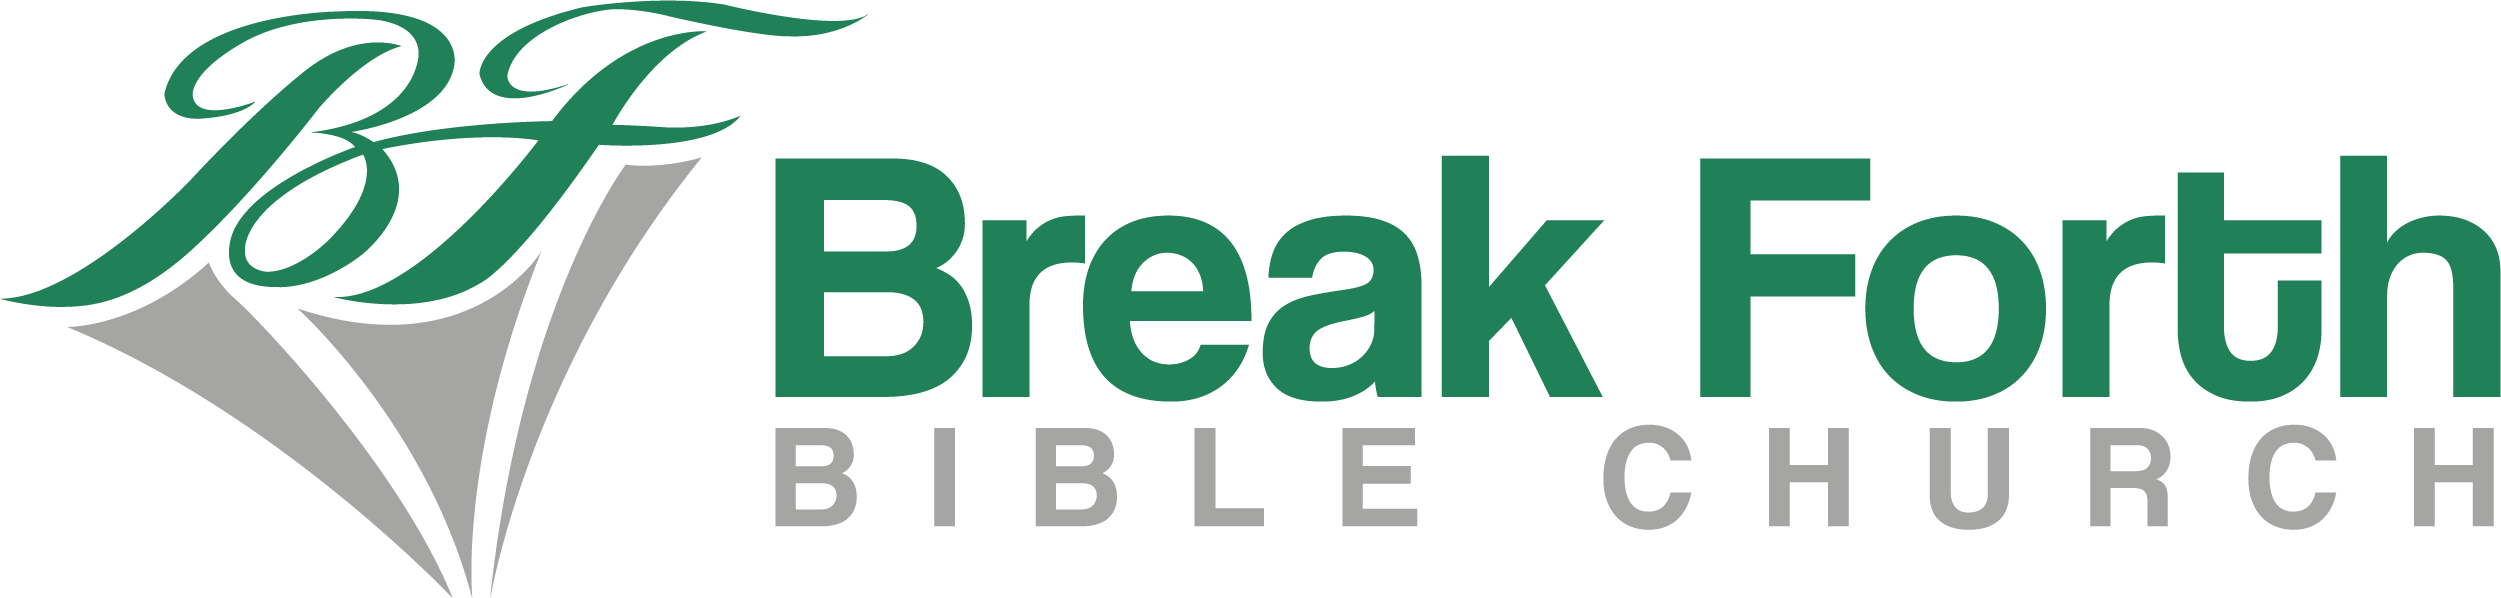 Update or redesign logo for Break Forth Bible Church